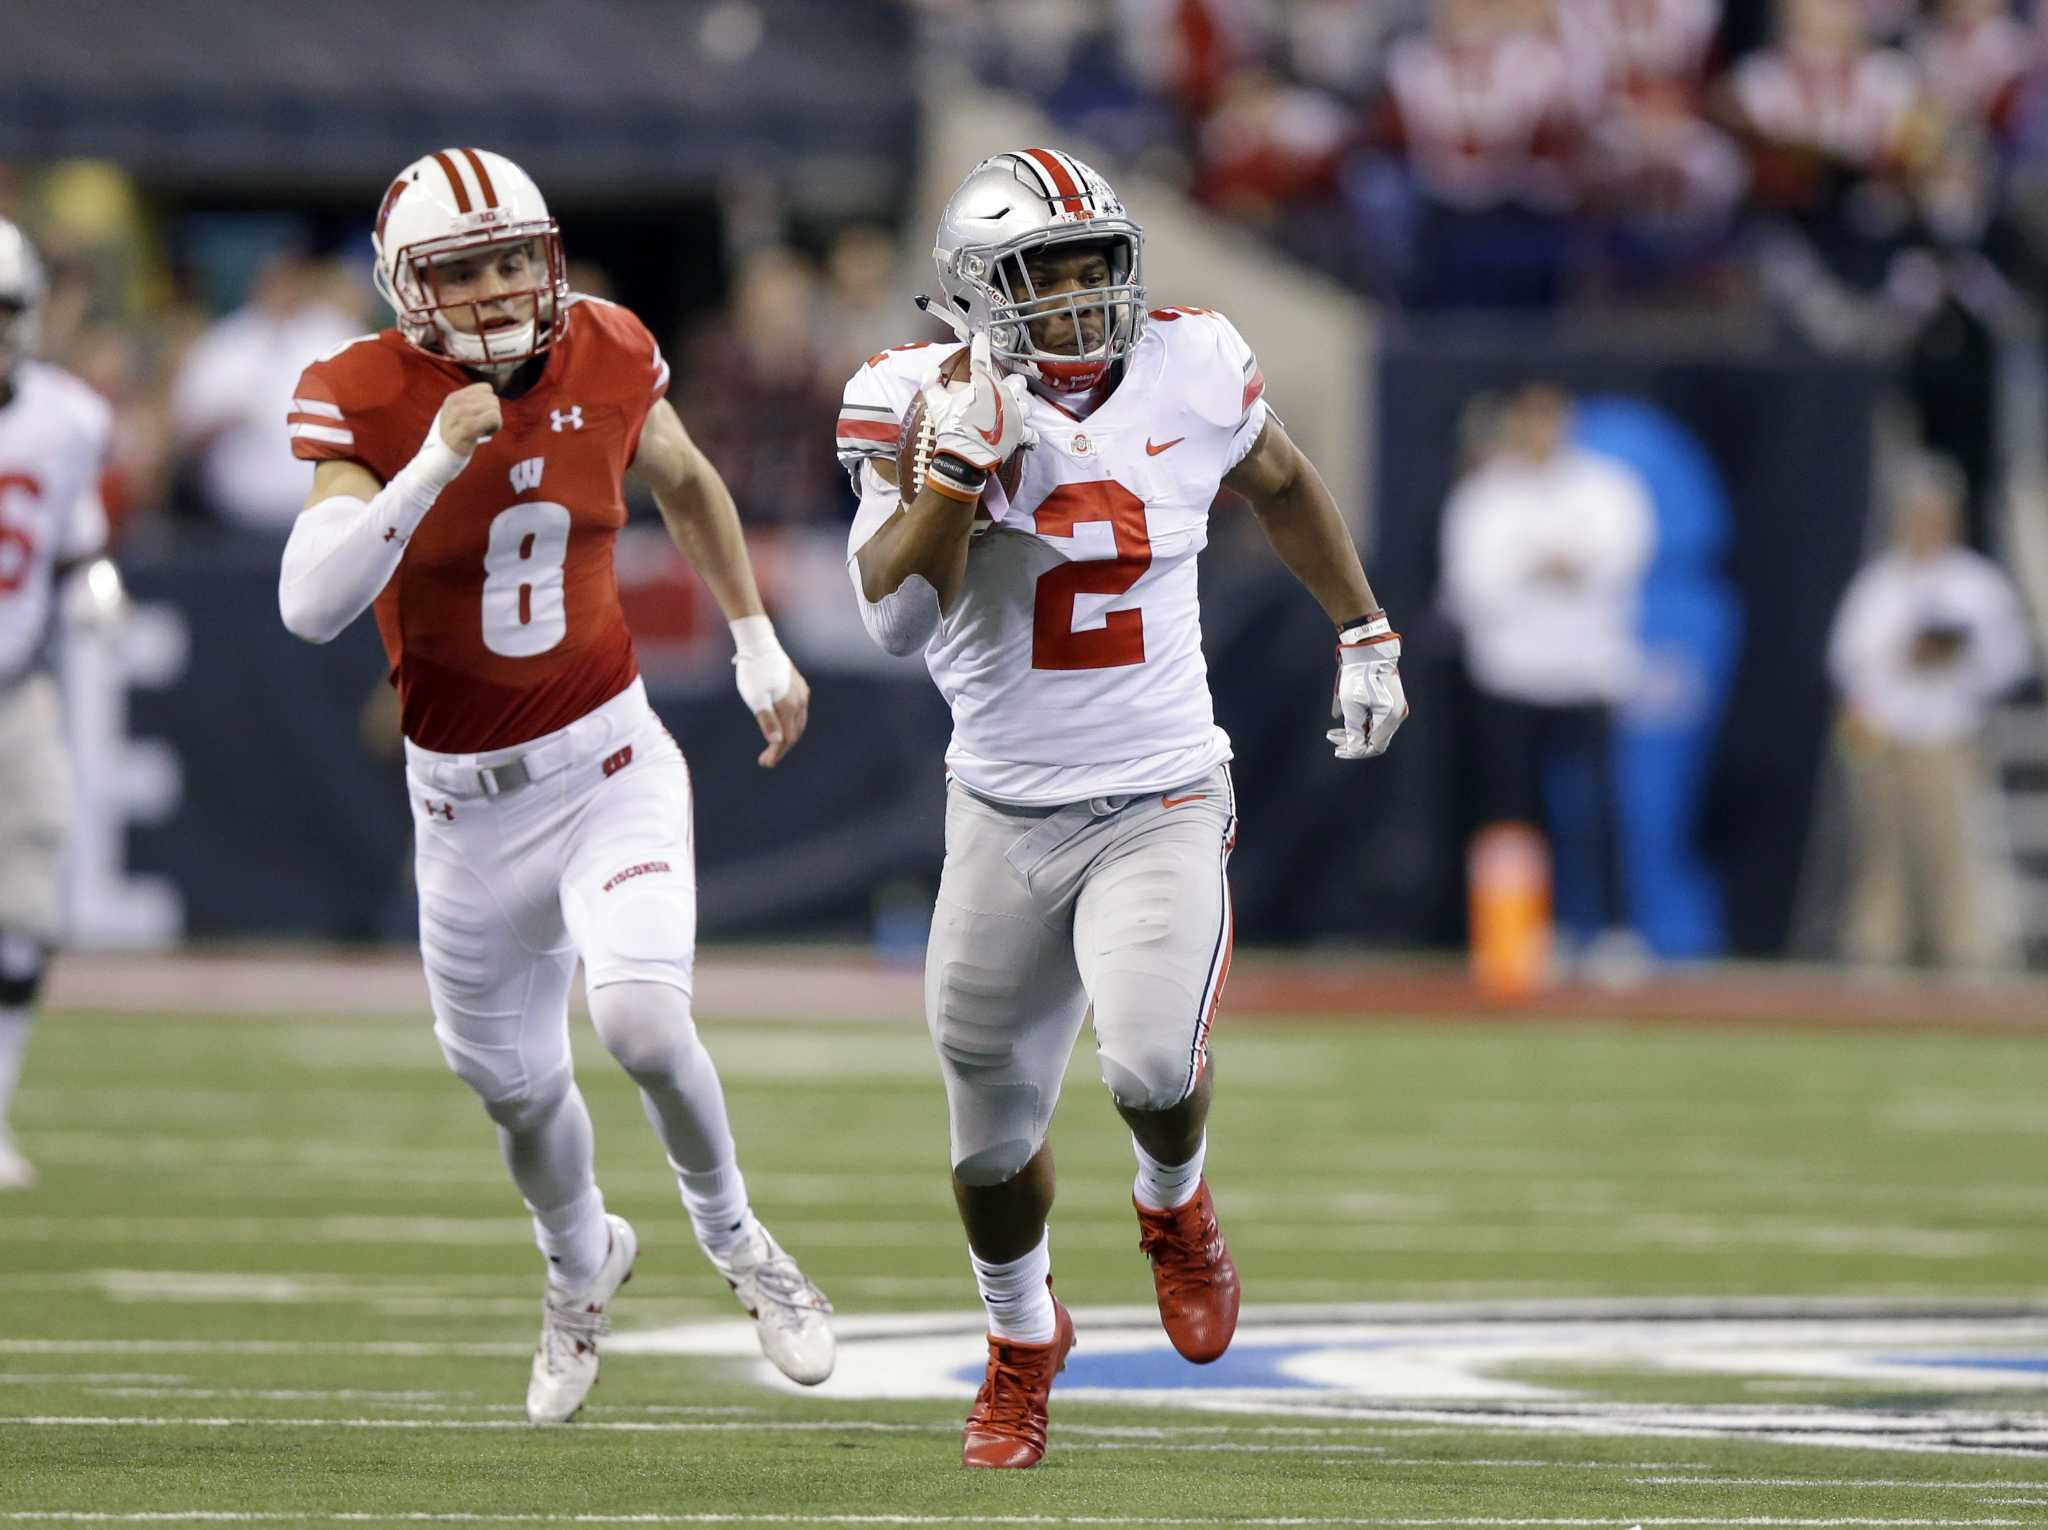 2020 NFL combine preview: Running backs